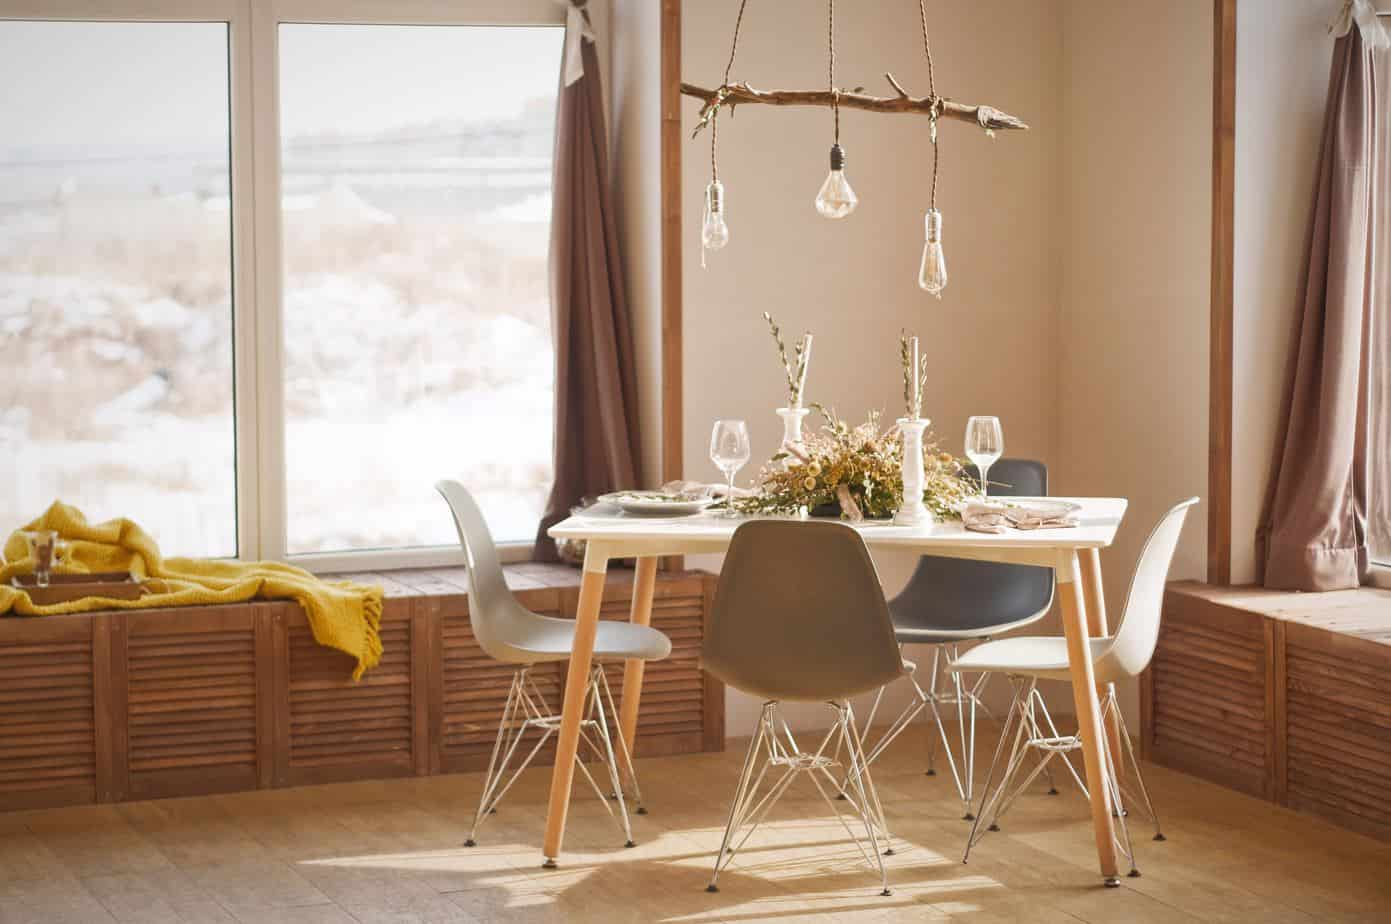 Top tips on decorating your dining room + #Giveaway